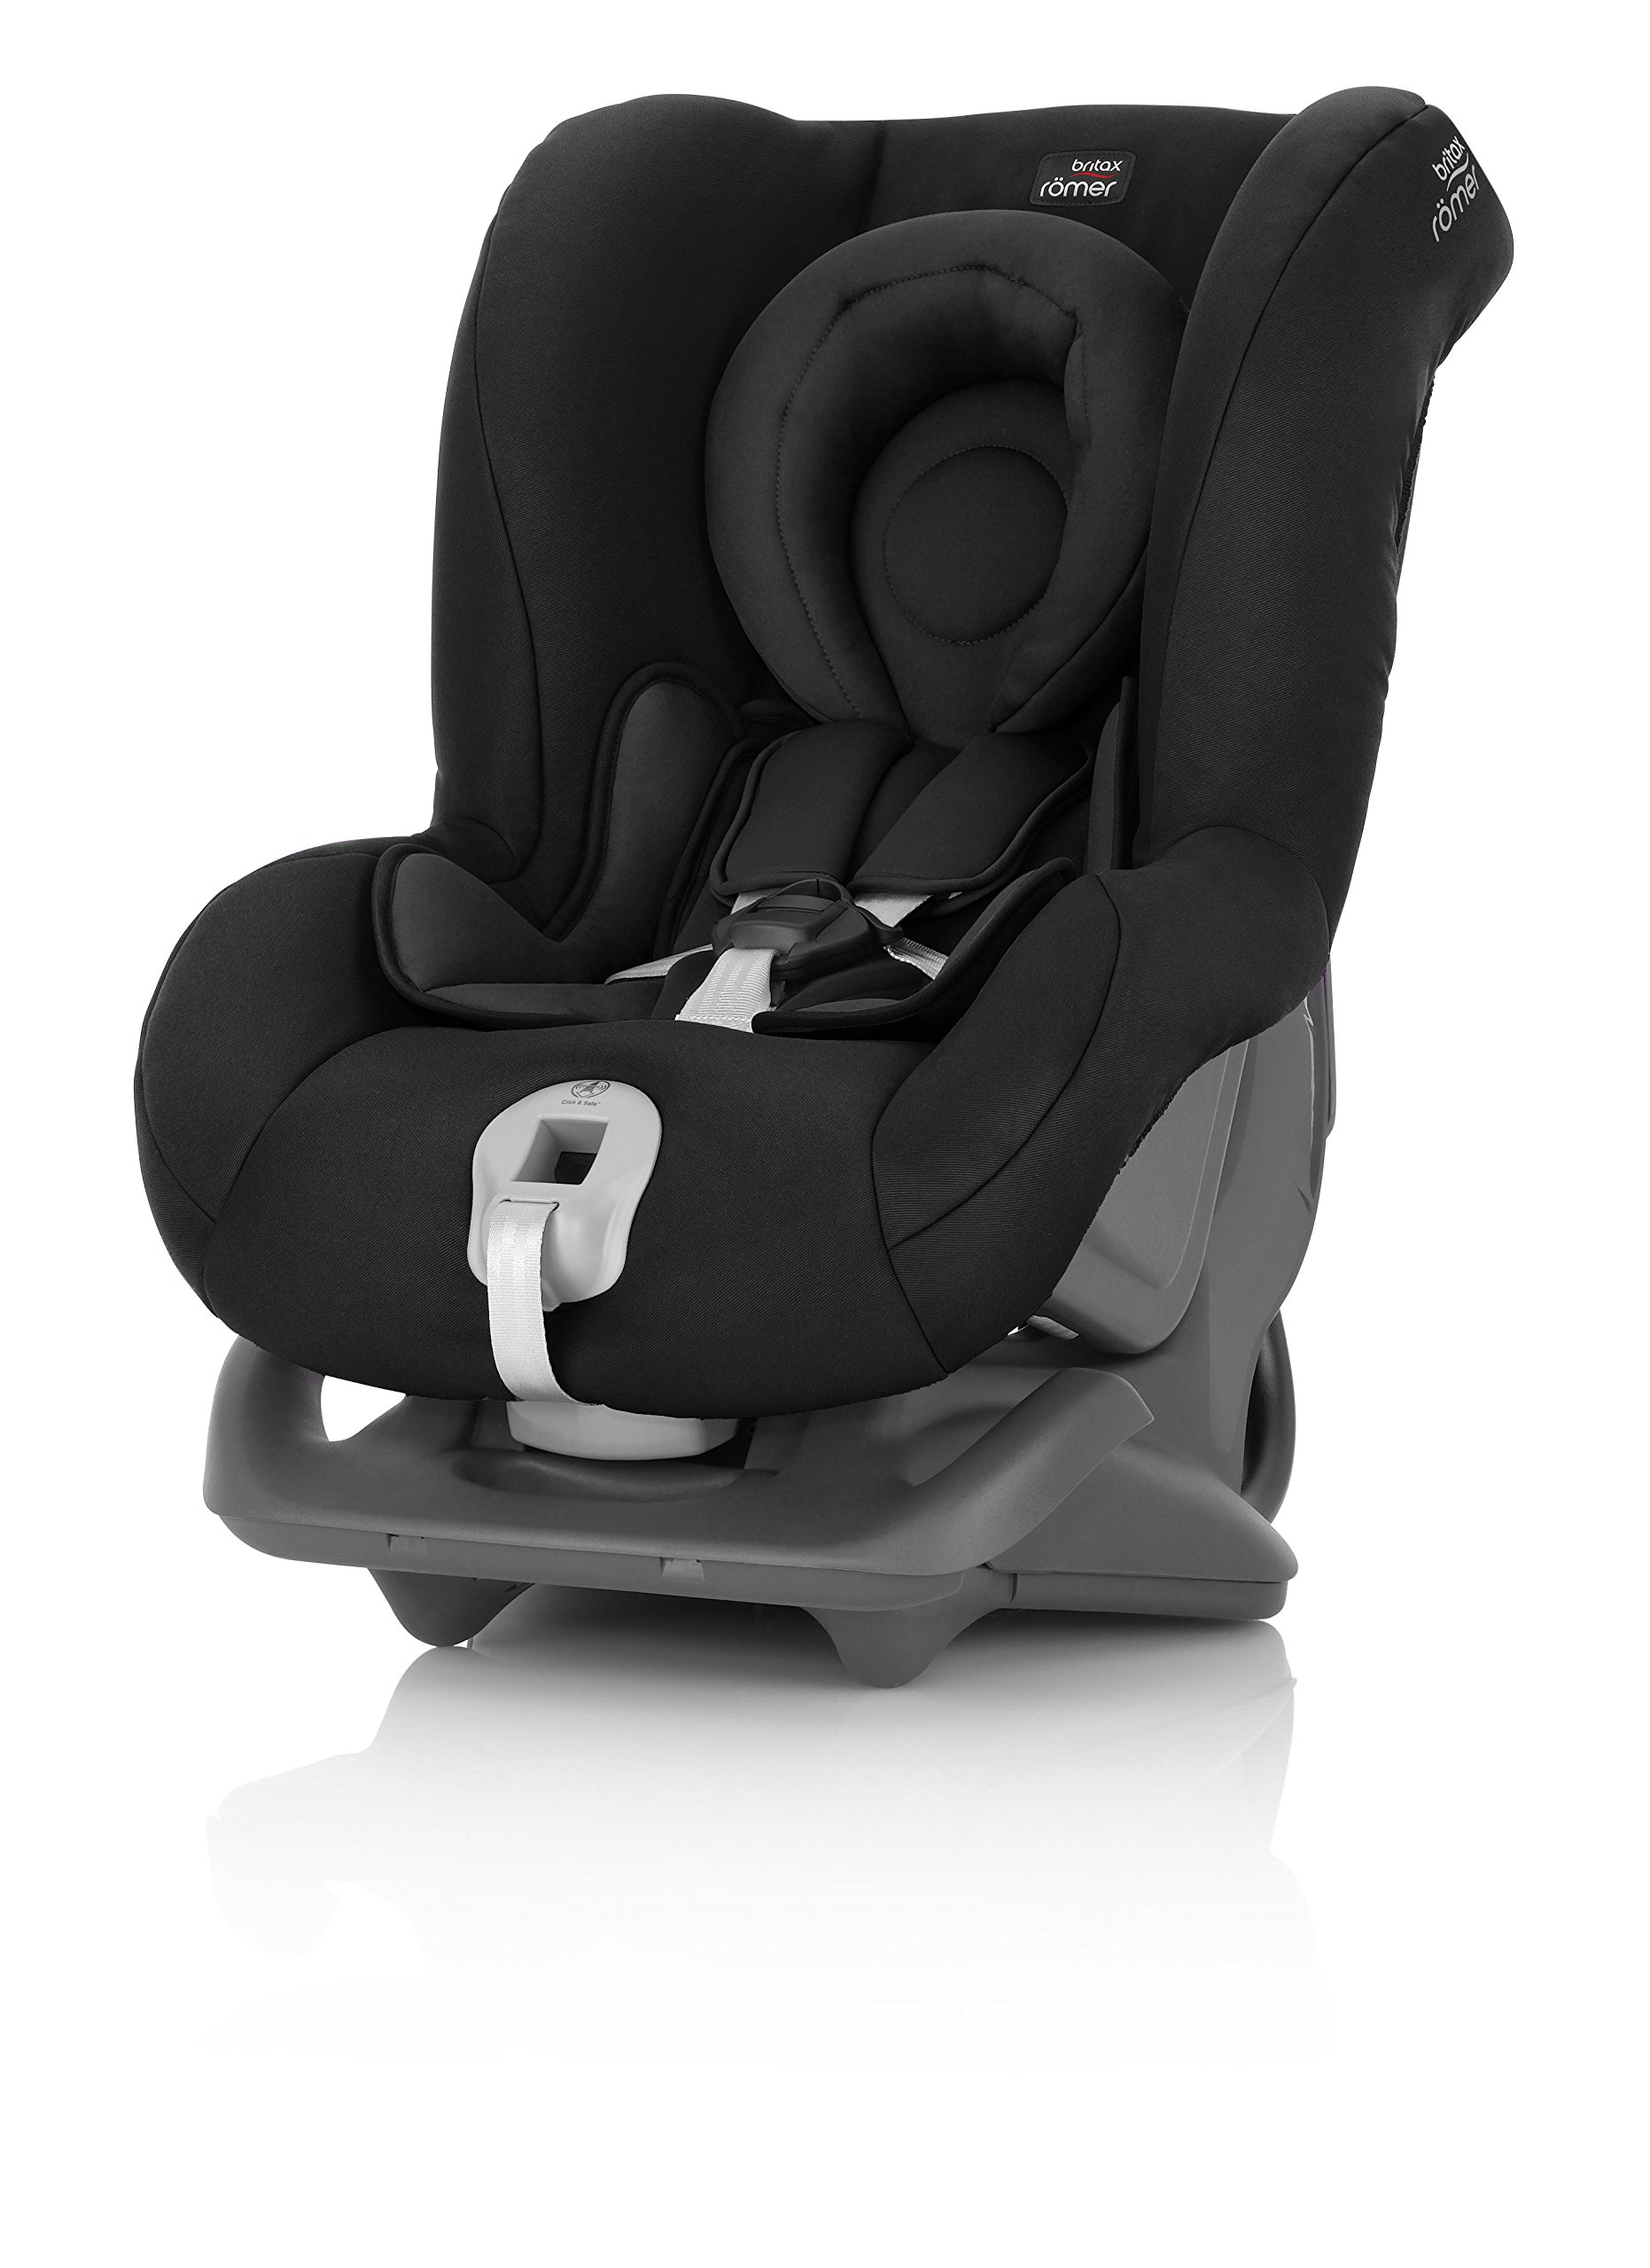 Britax Römer FIRST CLASS PLUS Group 0+/1 (Birth-18kg) Car Seat - Cosmos Black  Extended recline position when rearward facing - the safest way to travel Reassurance built-in - CLICK & SAFE harness tensioning confirmation Superior protection - side impact protection Plus performance chest pads and pitch control system 2